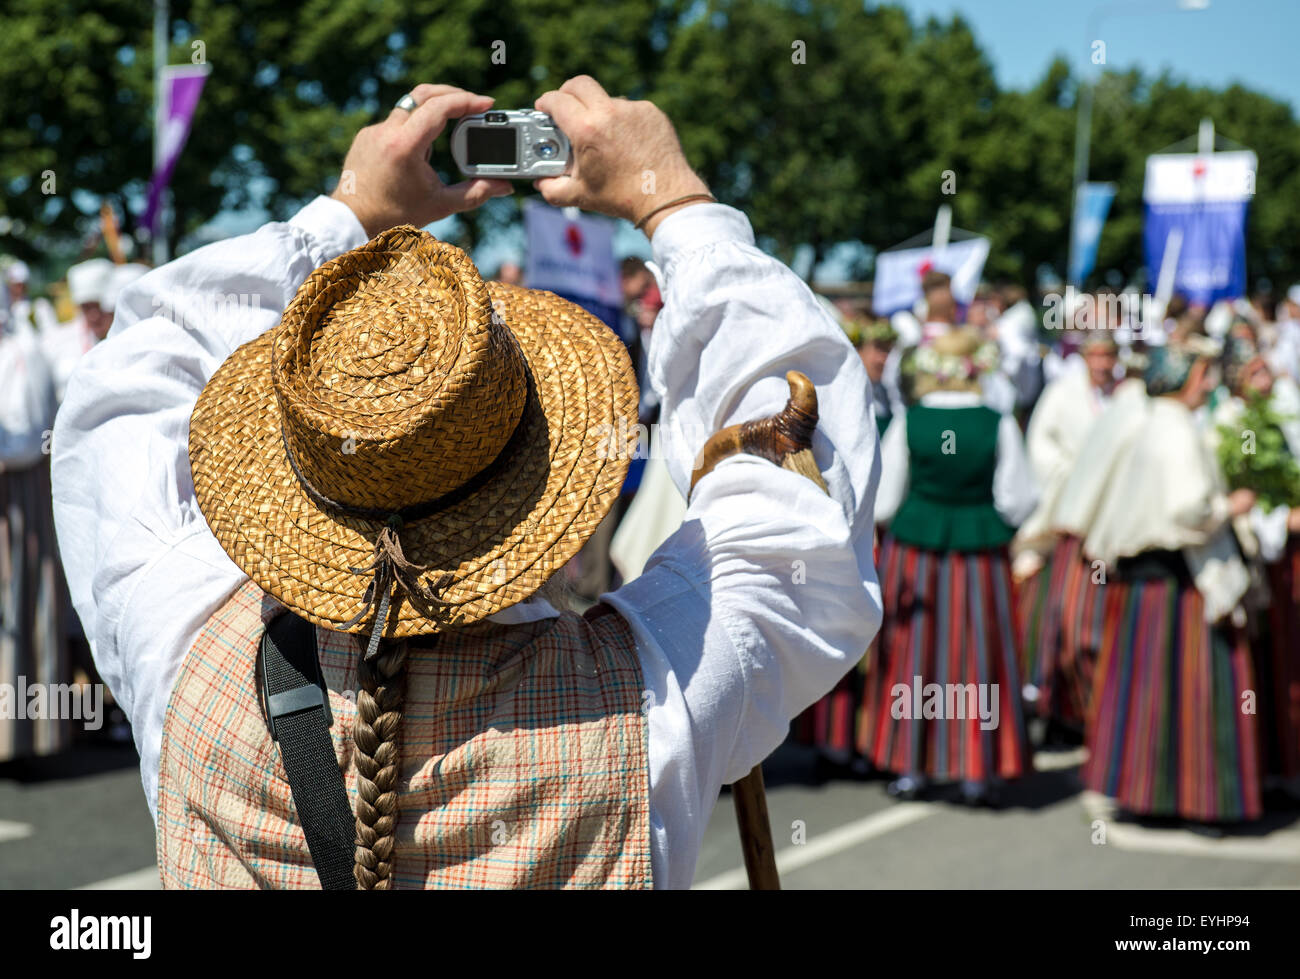 Man in latvian national costume take a photo - Stock Image